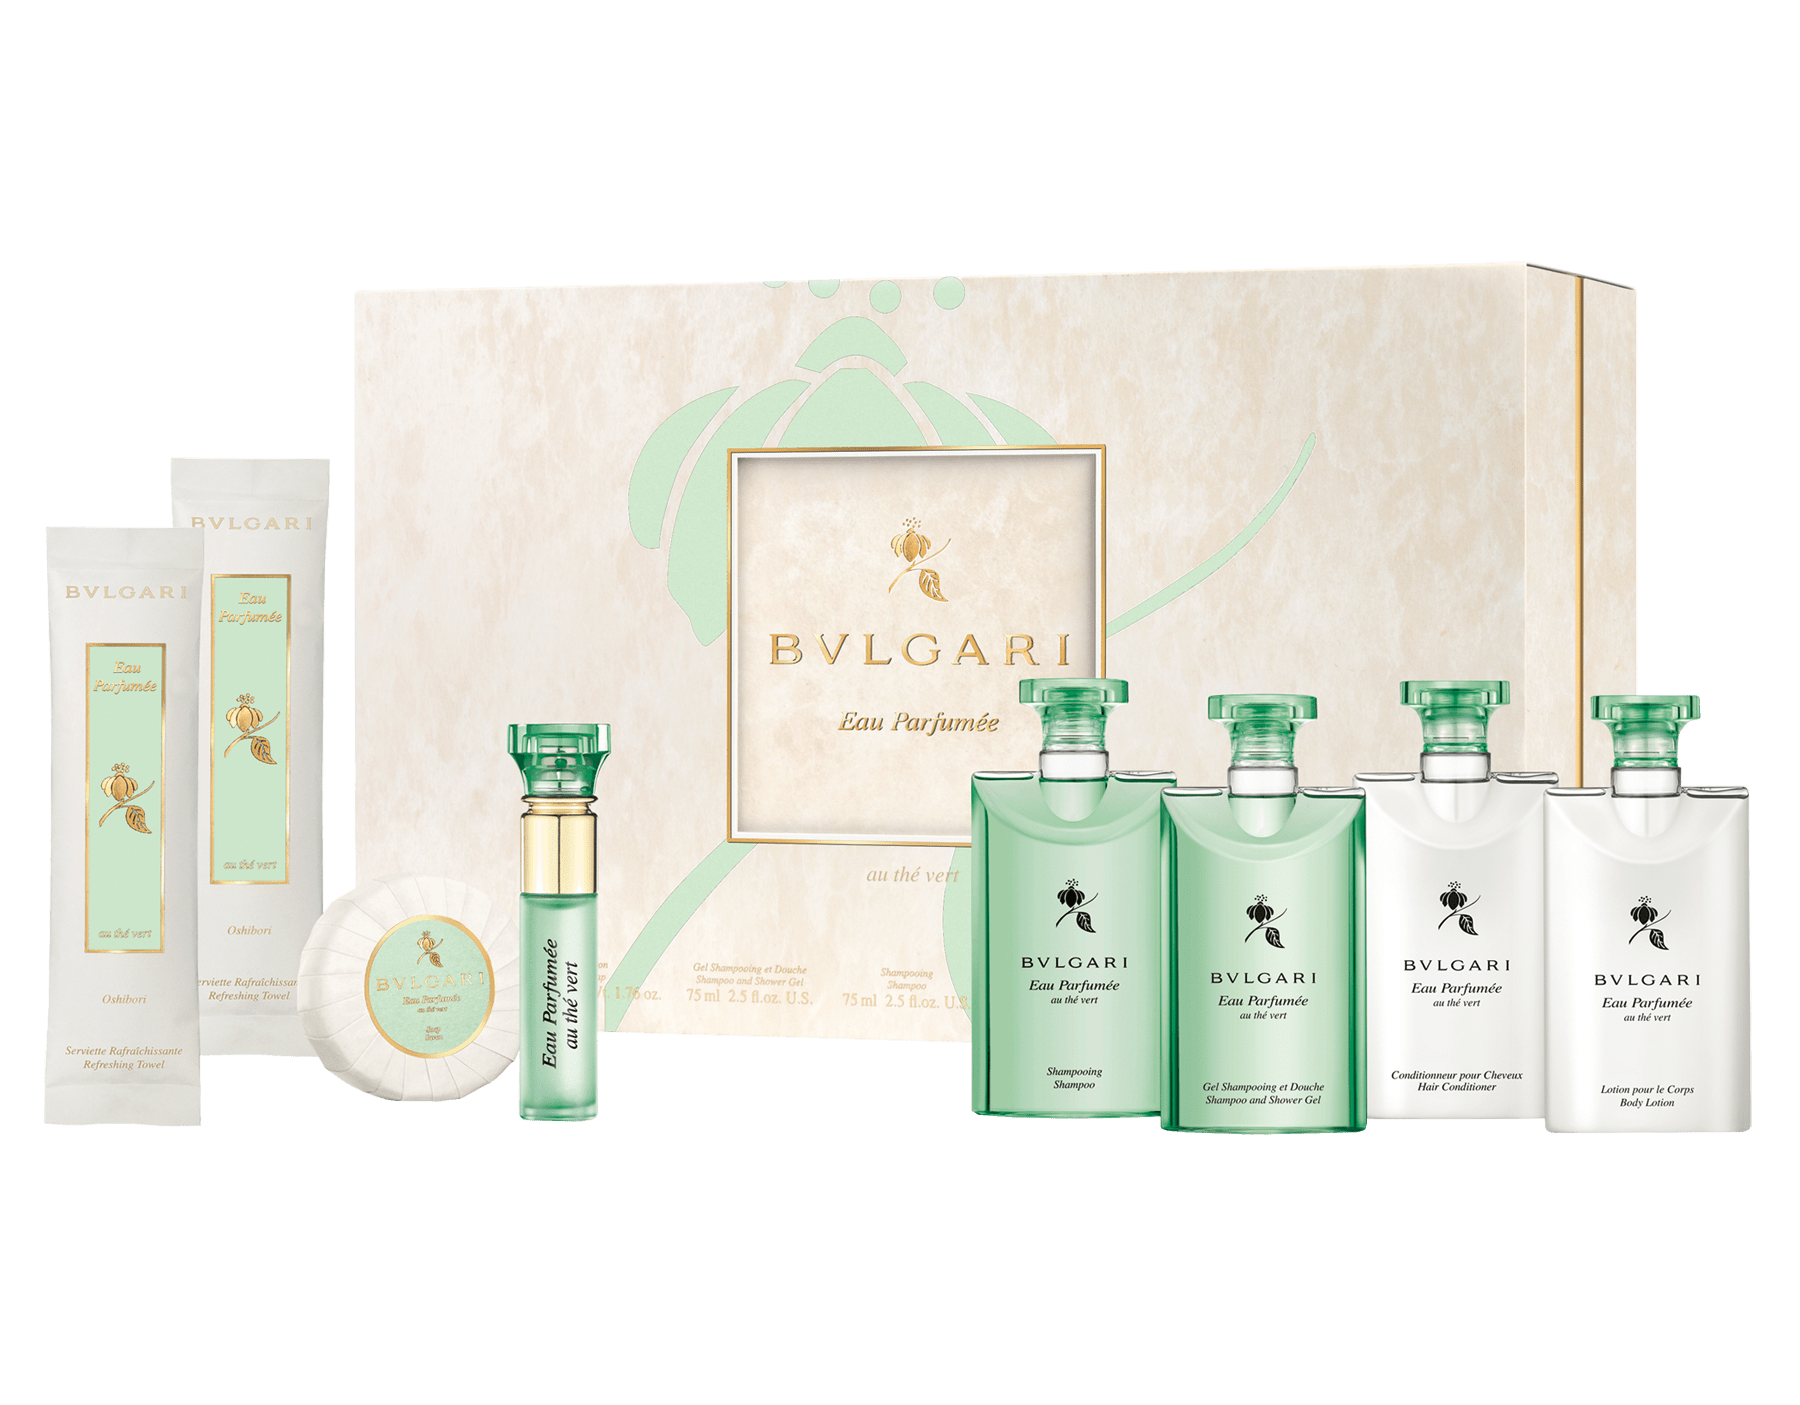 Experience an enveloping sense of wellness amplified by the elegant and revitalizing luxury scent of Eau Parfumée au Thé Vert. 41072 image 1